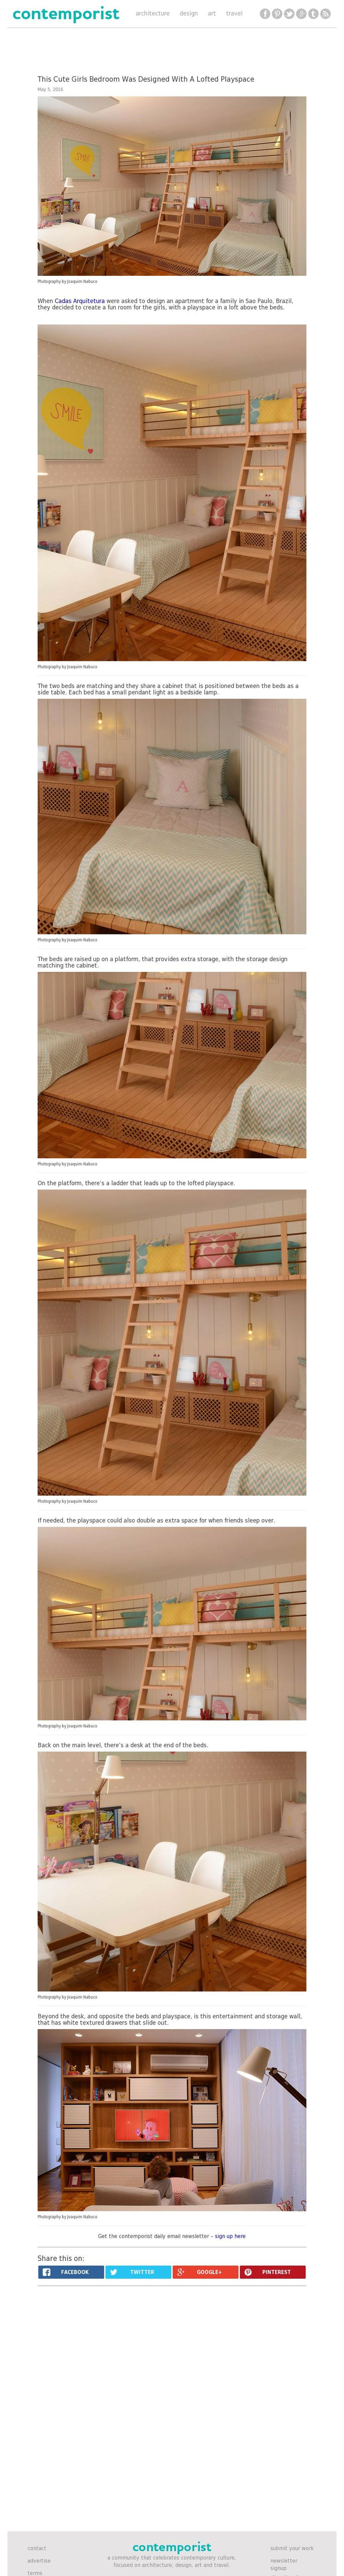 This Cute Girls Bedroom Was Designed With A Lofted Playspace  Girls bedroom ideas, loft ideas, kids bedroom ideas, bunk bed ideas, lofted beds for kids